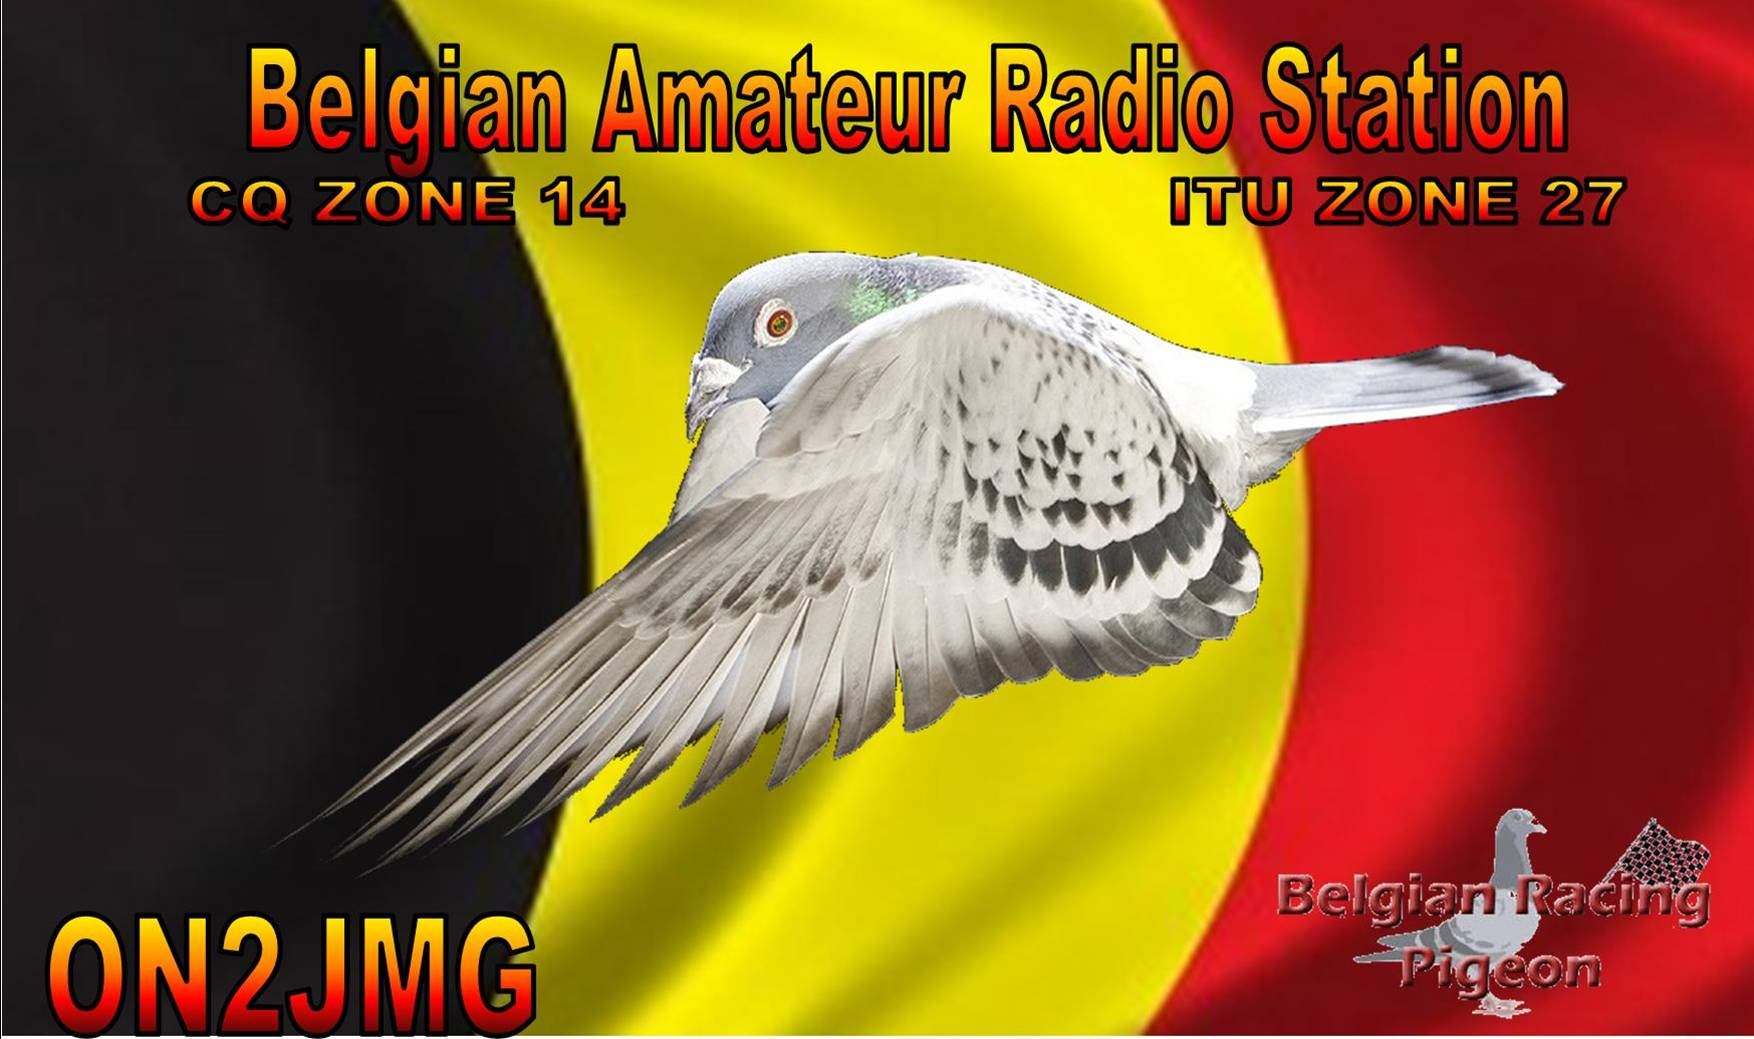 QSL image for ON2JMG